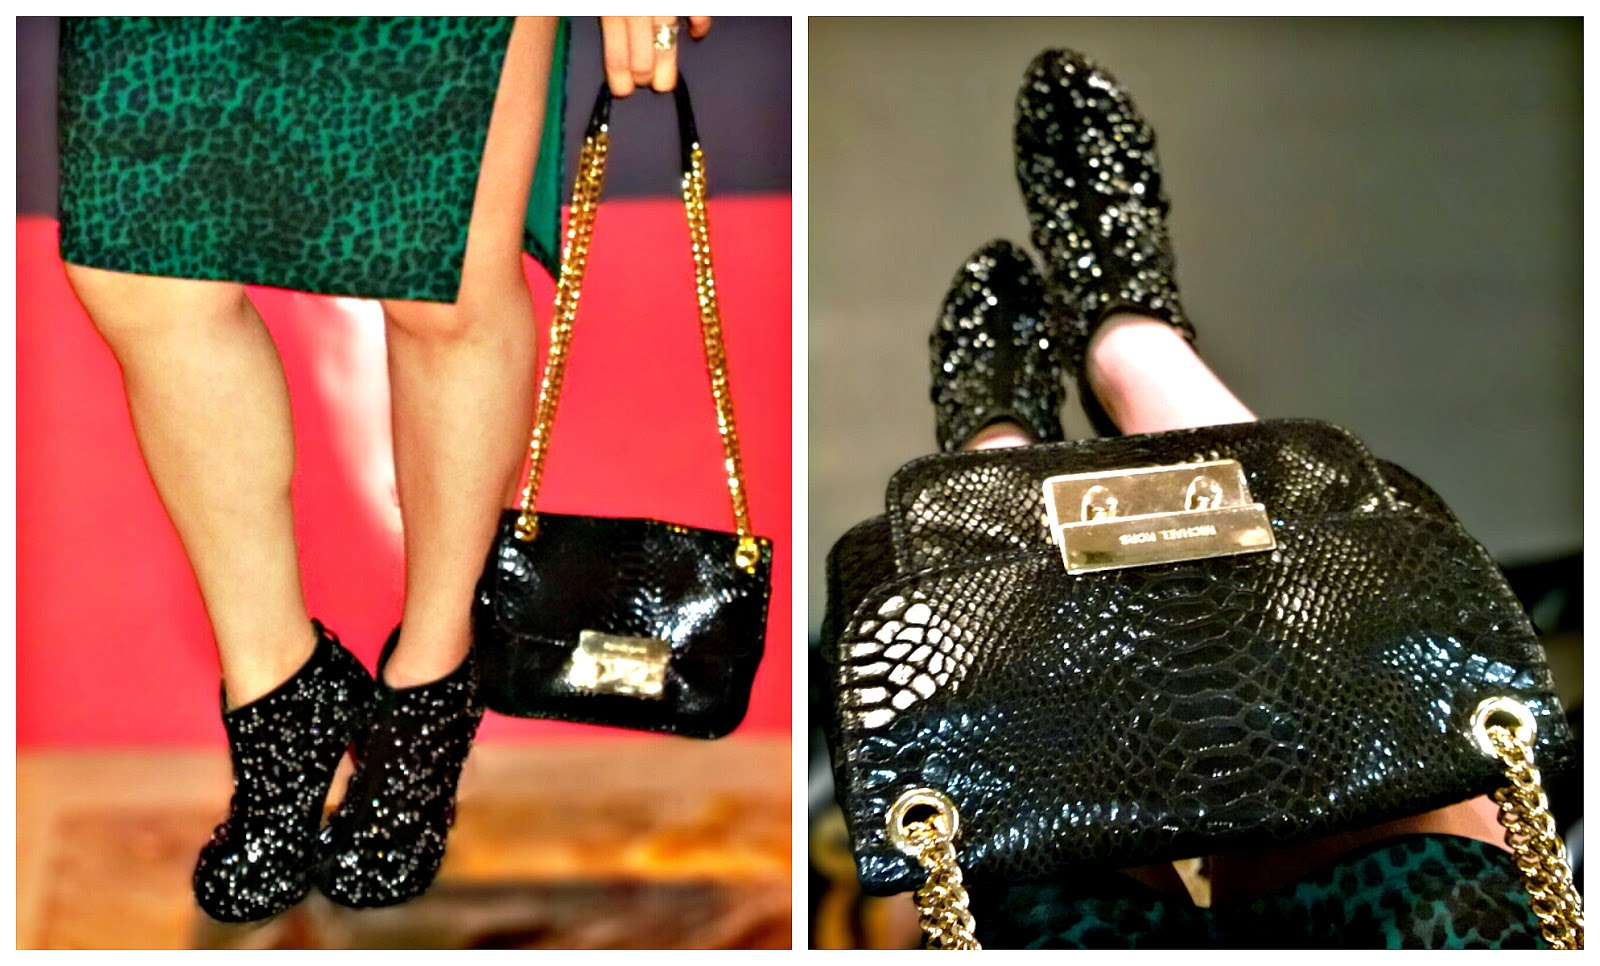 Rhinestone Black Ankle Boots, Michael Kors Black Patent Python Small Sloan Shoulder Flap Bag